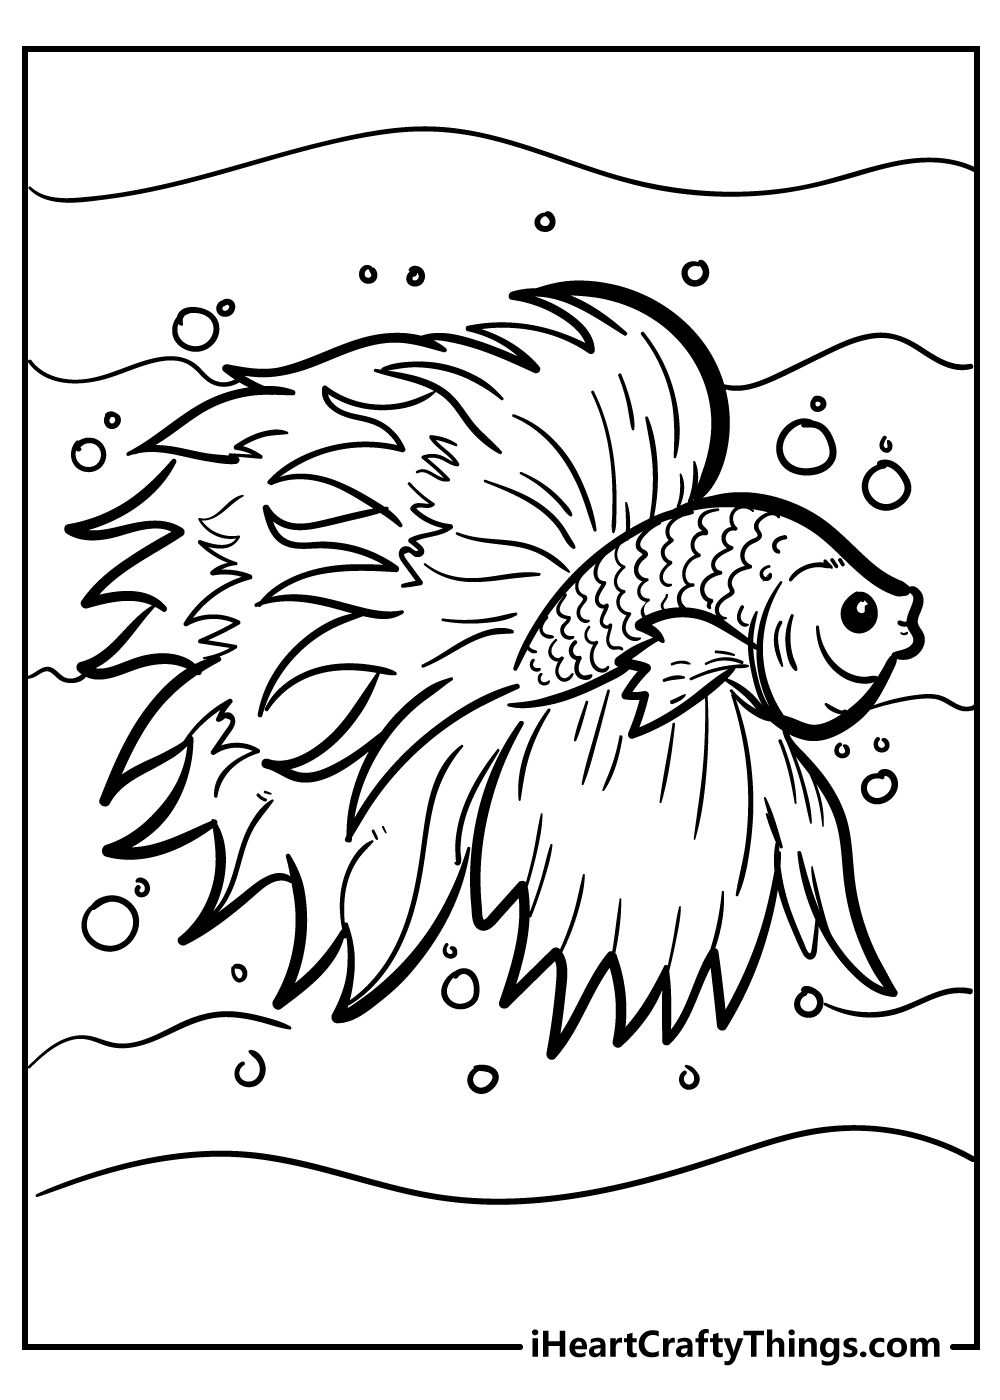 Betta fish coloring pages for preschoolers free printable